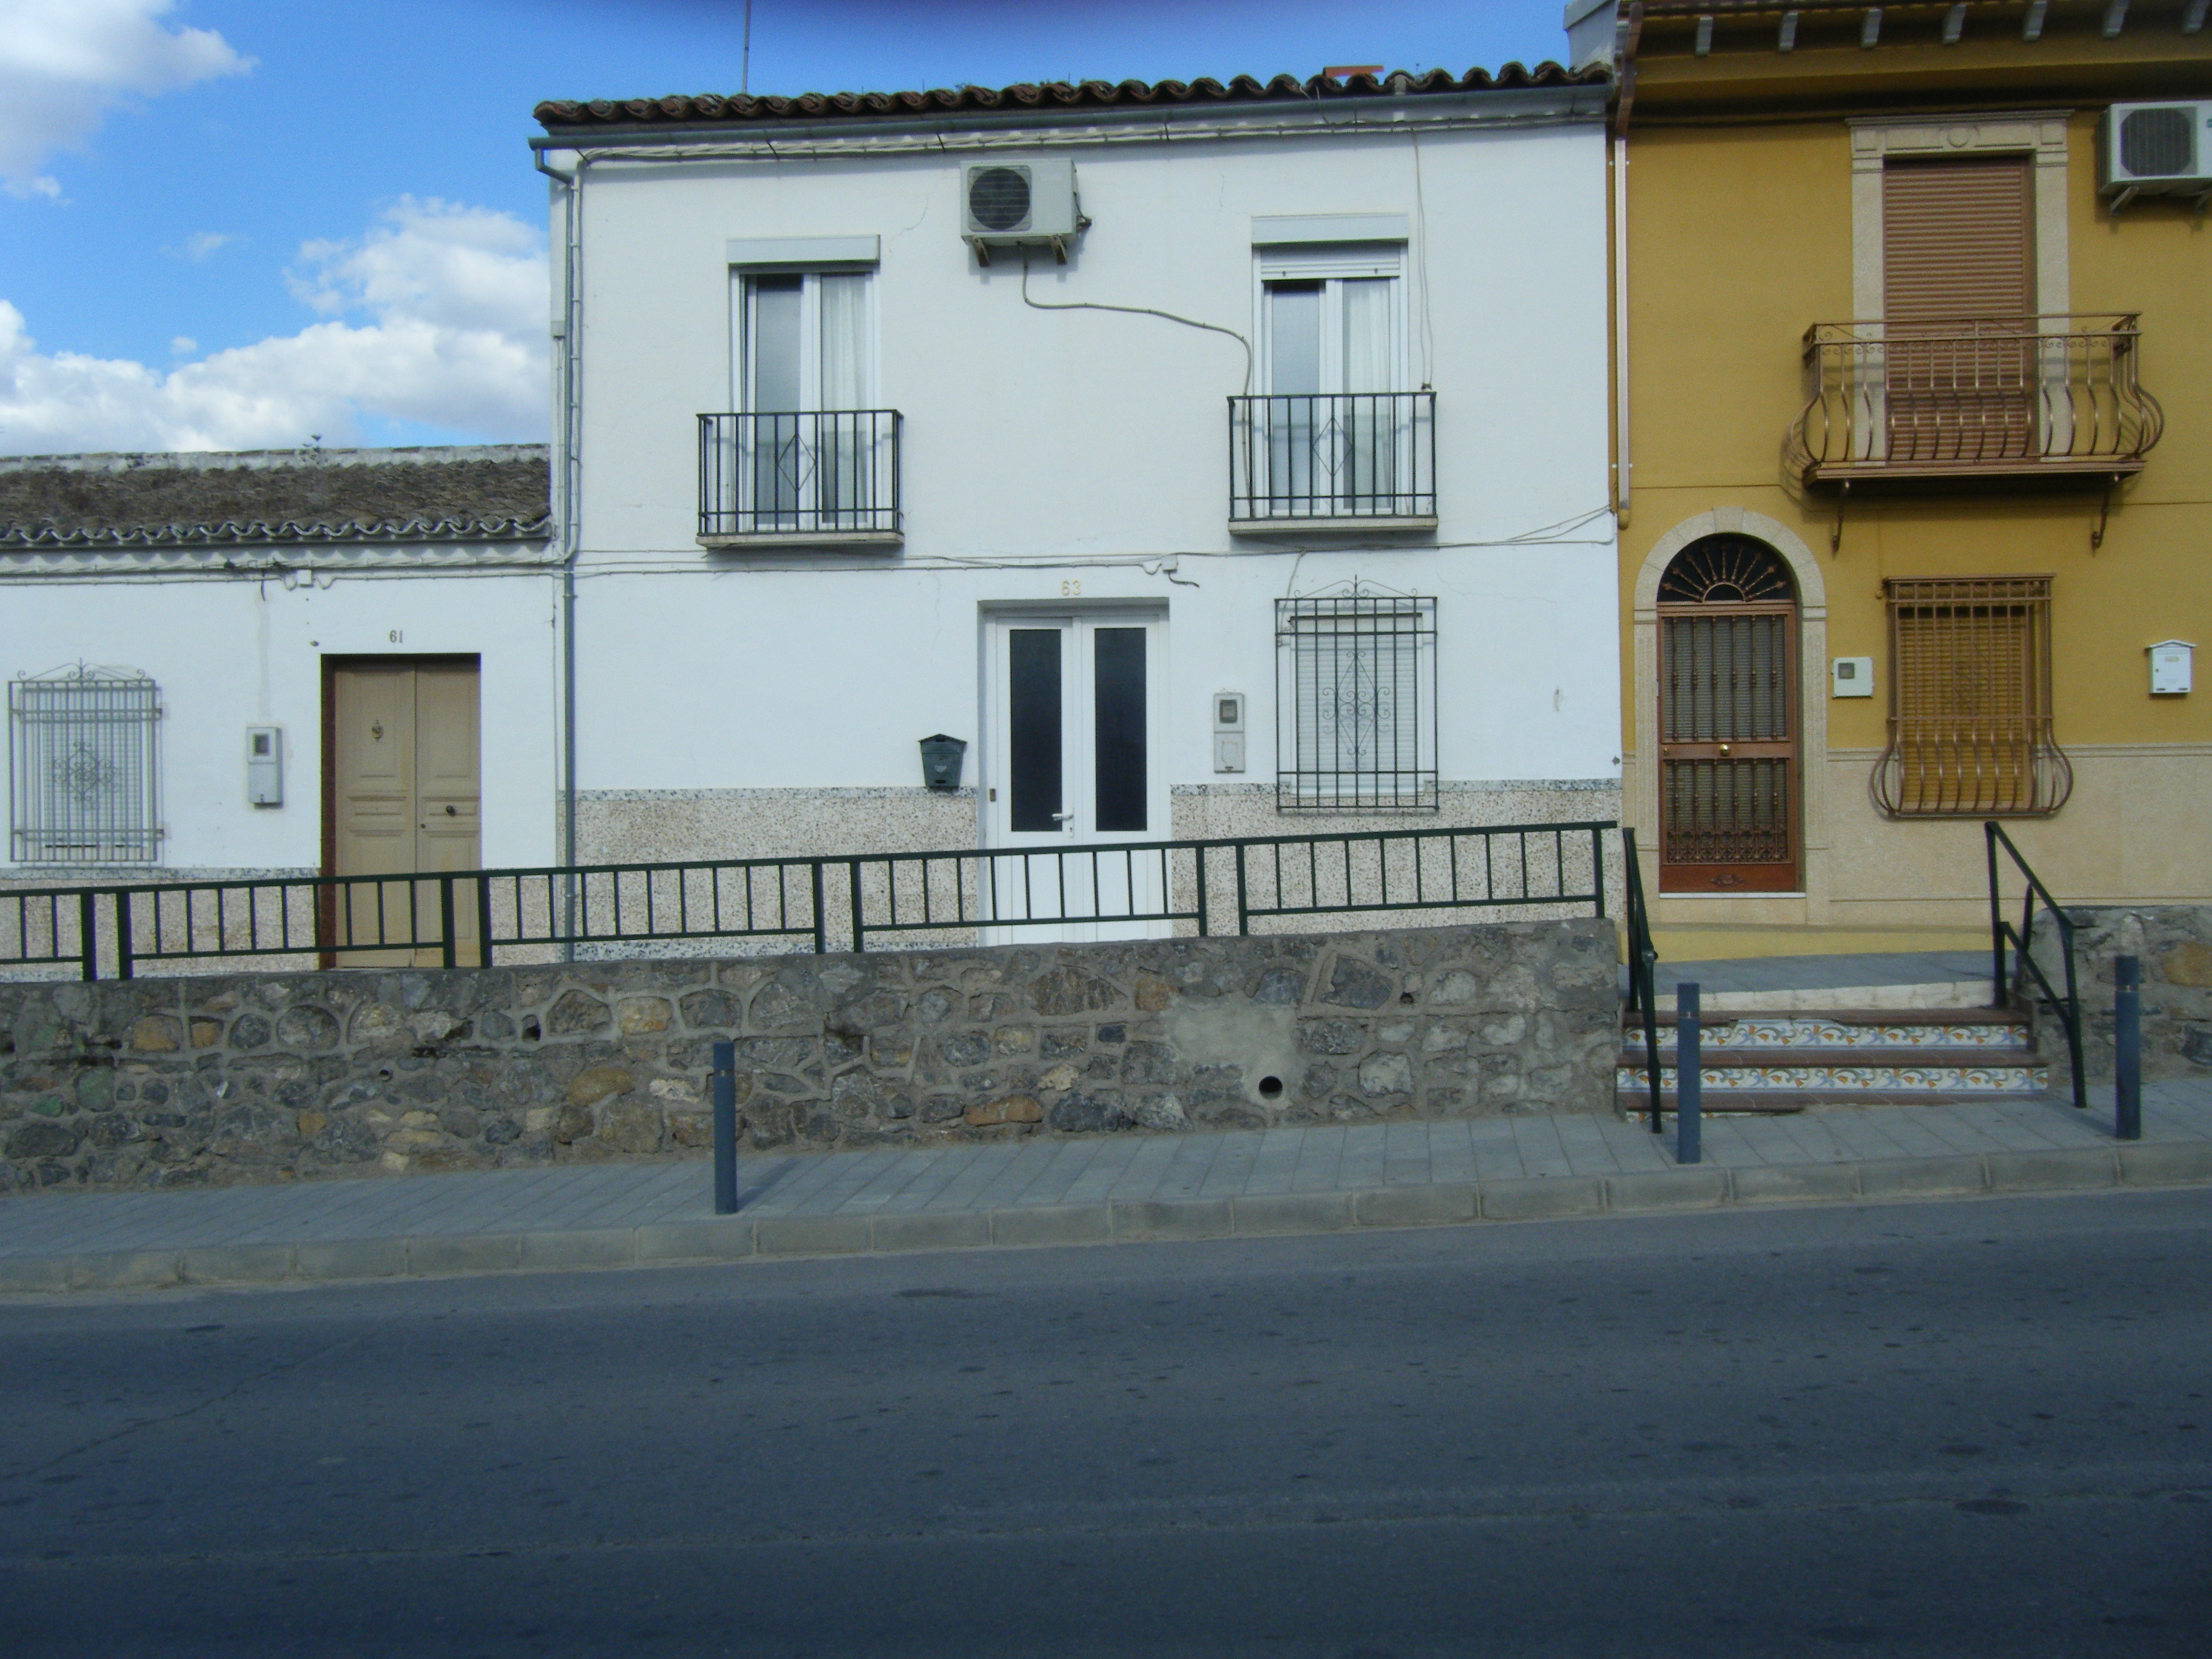 Private Townhouse for Sale in Cordoba